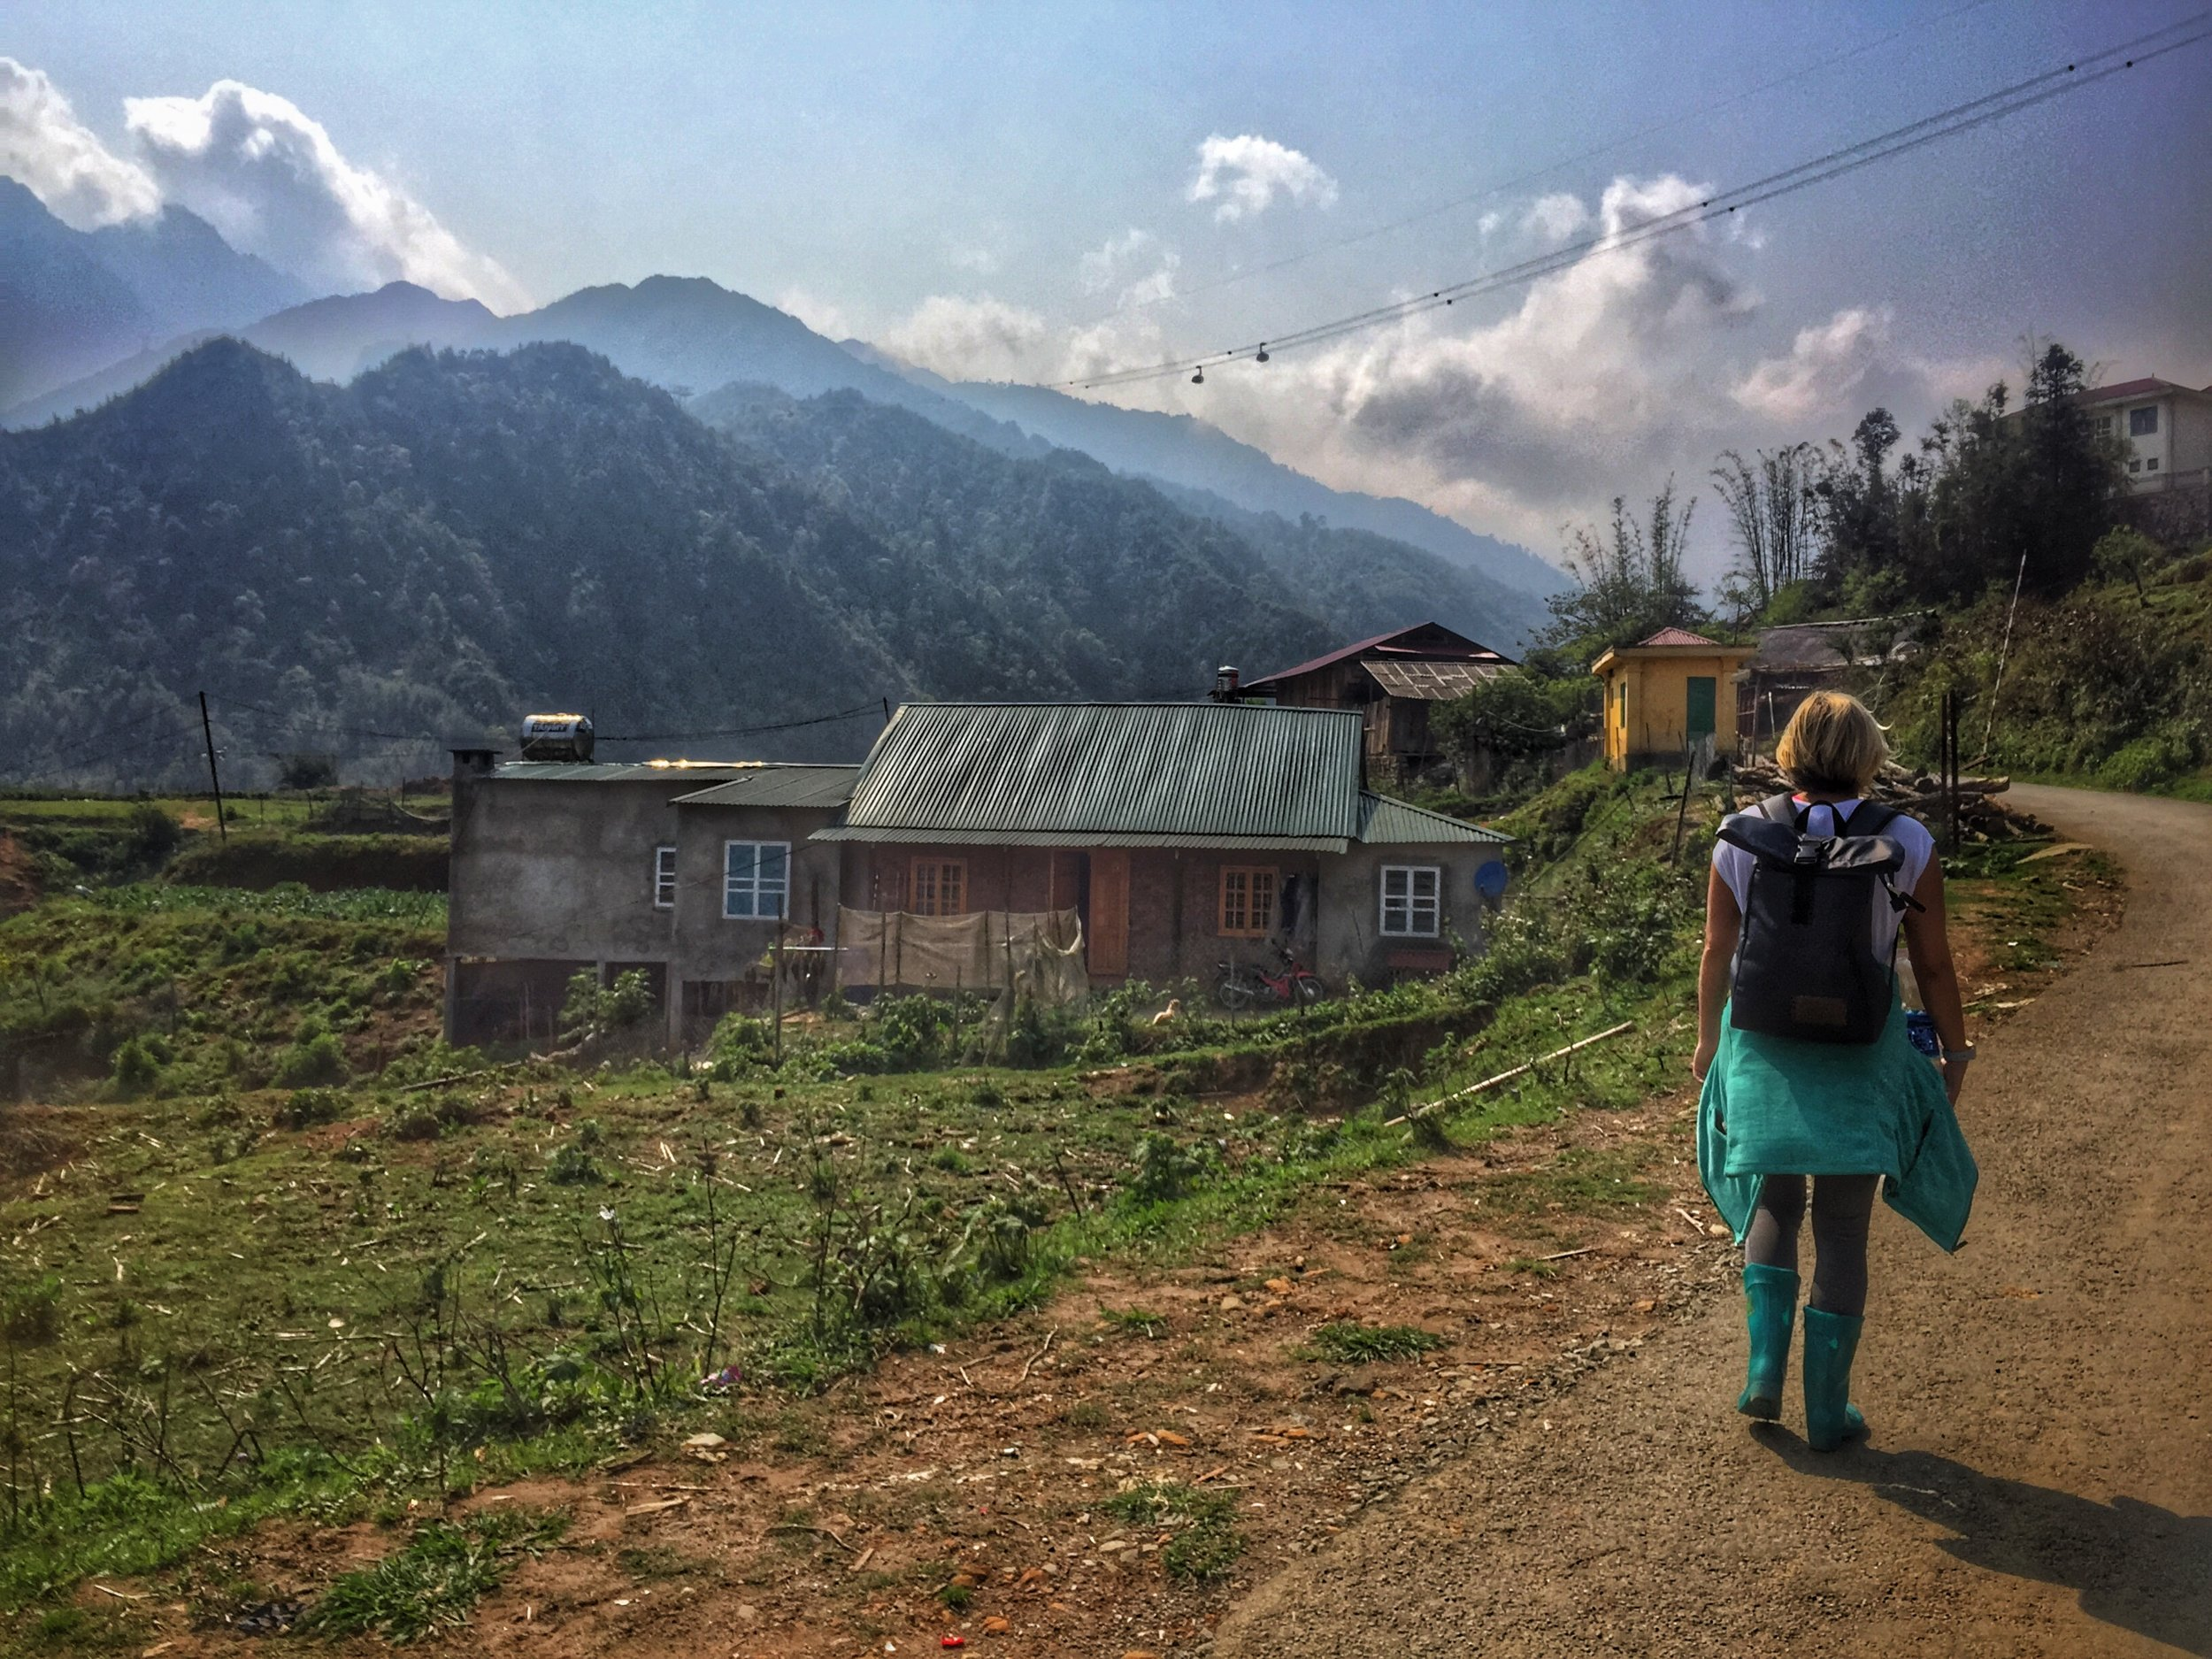 Exploring local villages around Sapa on foot was an adventure!